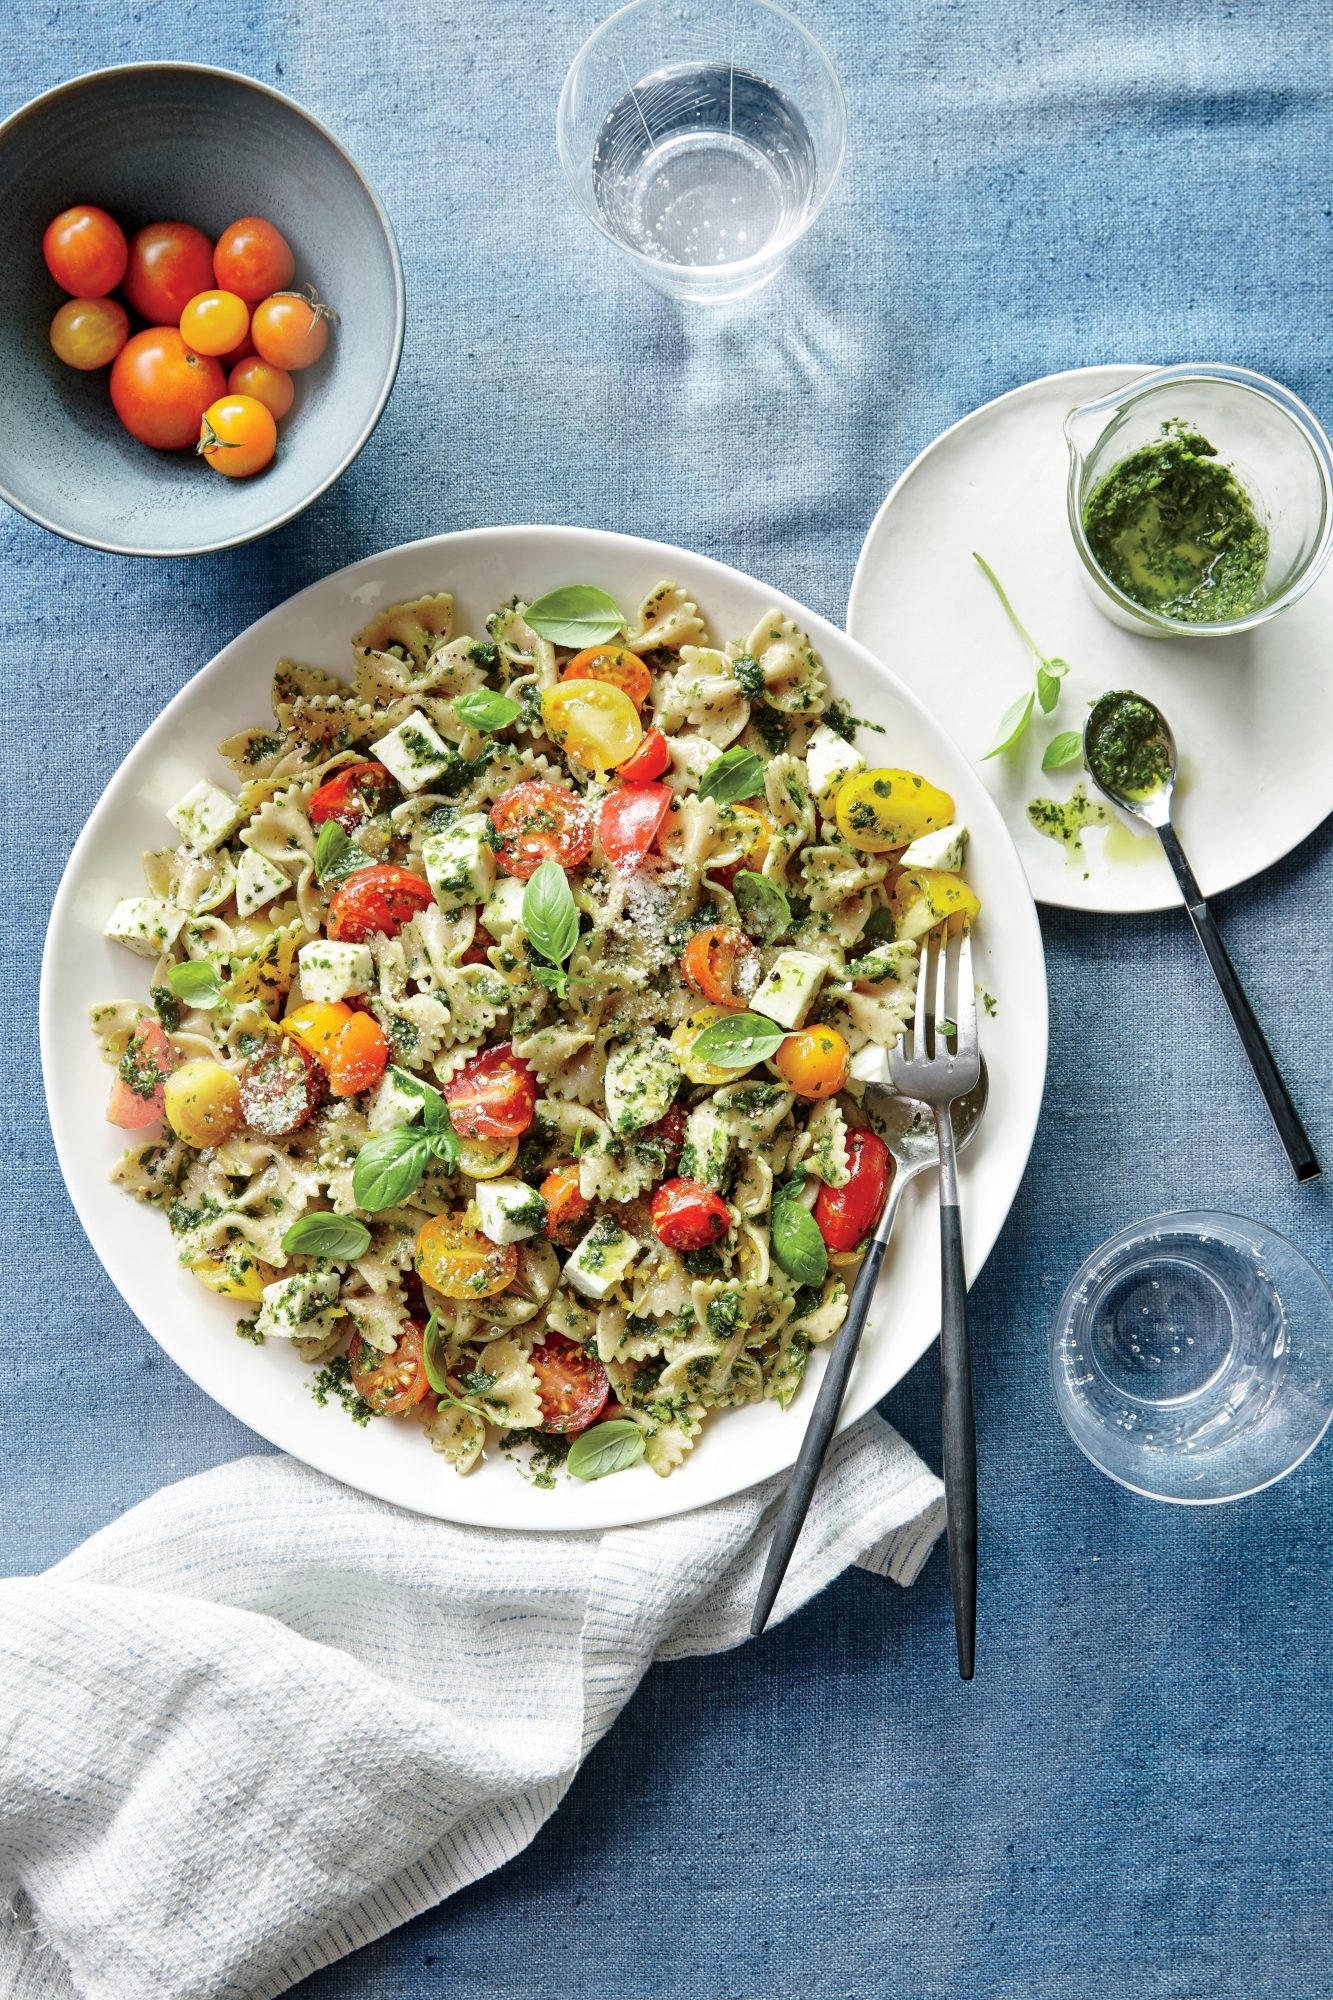 Pesto Pasta Salad With Tomatoeozzarella